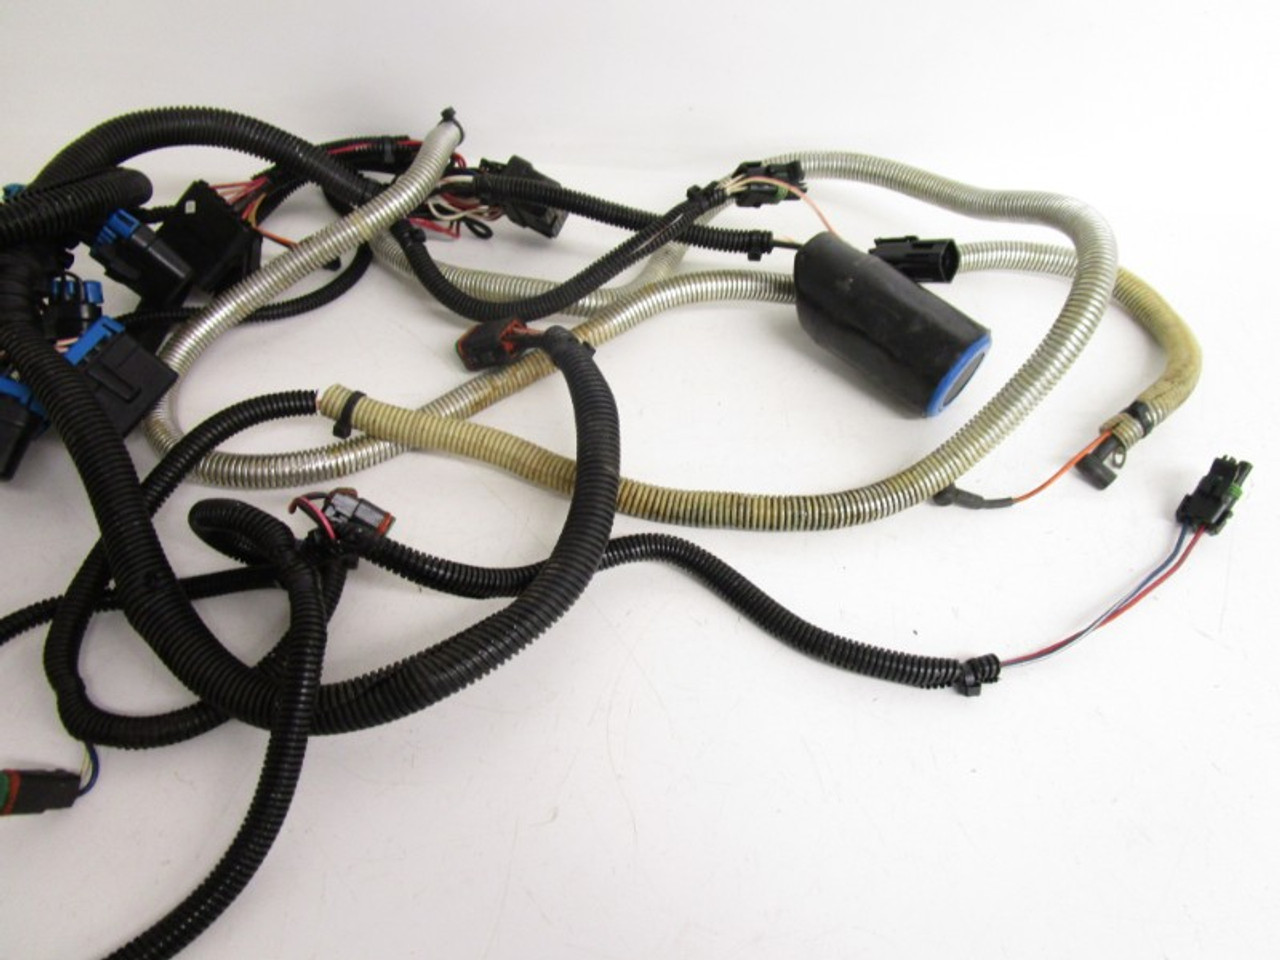 02 Polaris Virage I Twin PWC Engine Chassis Wiring Harness - cyclesrus.net | Pwc Wiring Harness |  | Cycles R Us